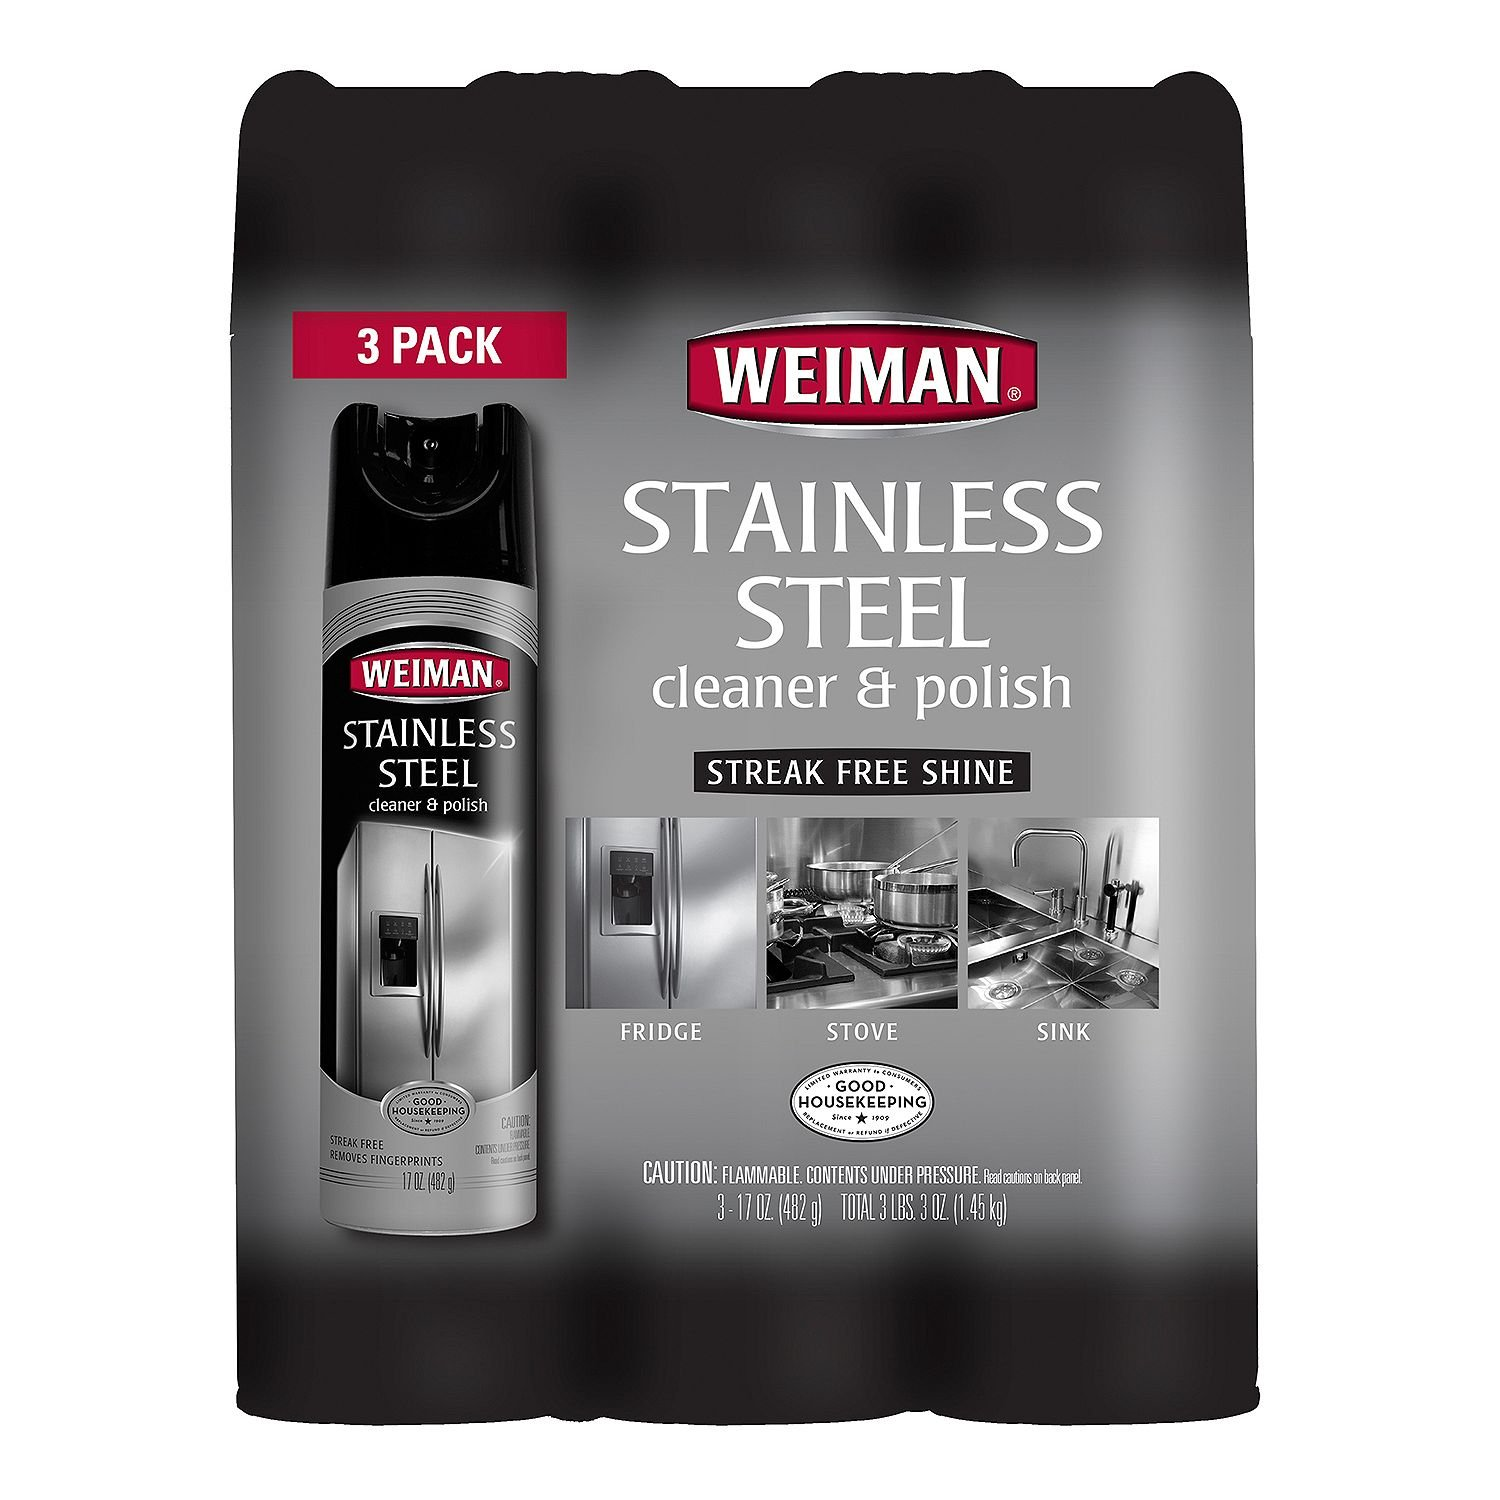 Weiman Stainless Steel Cleaner & Polish by Weiman